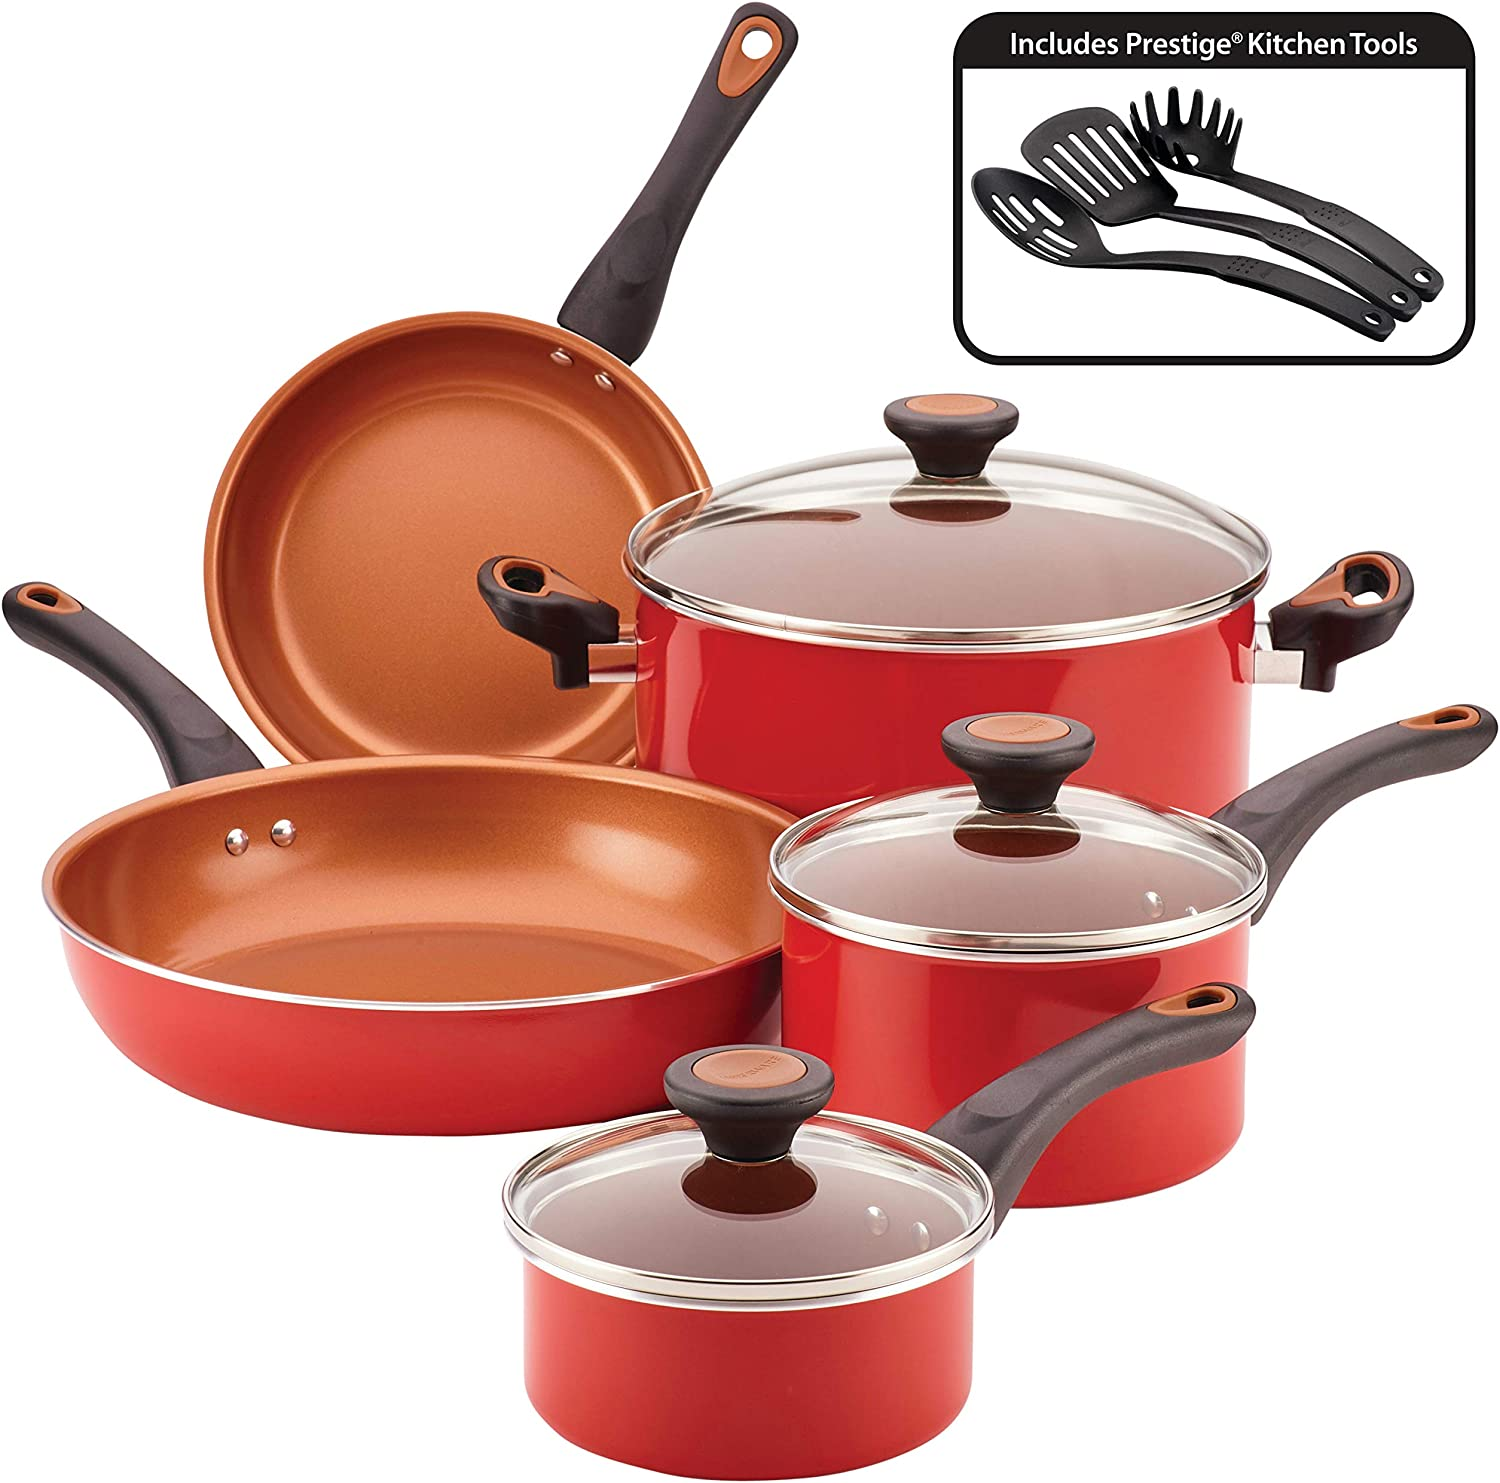 Farberware 10364 Glide Ceramic Nonstick Cookware Pots and Pans Set, 11 Piece, Red